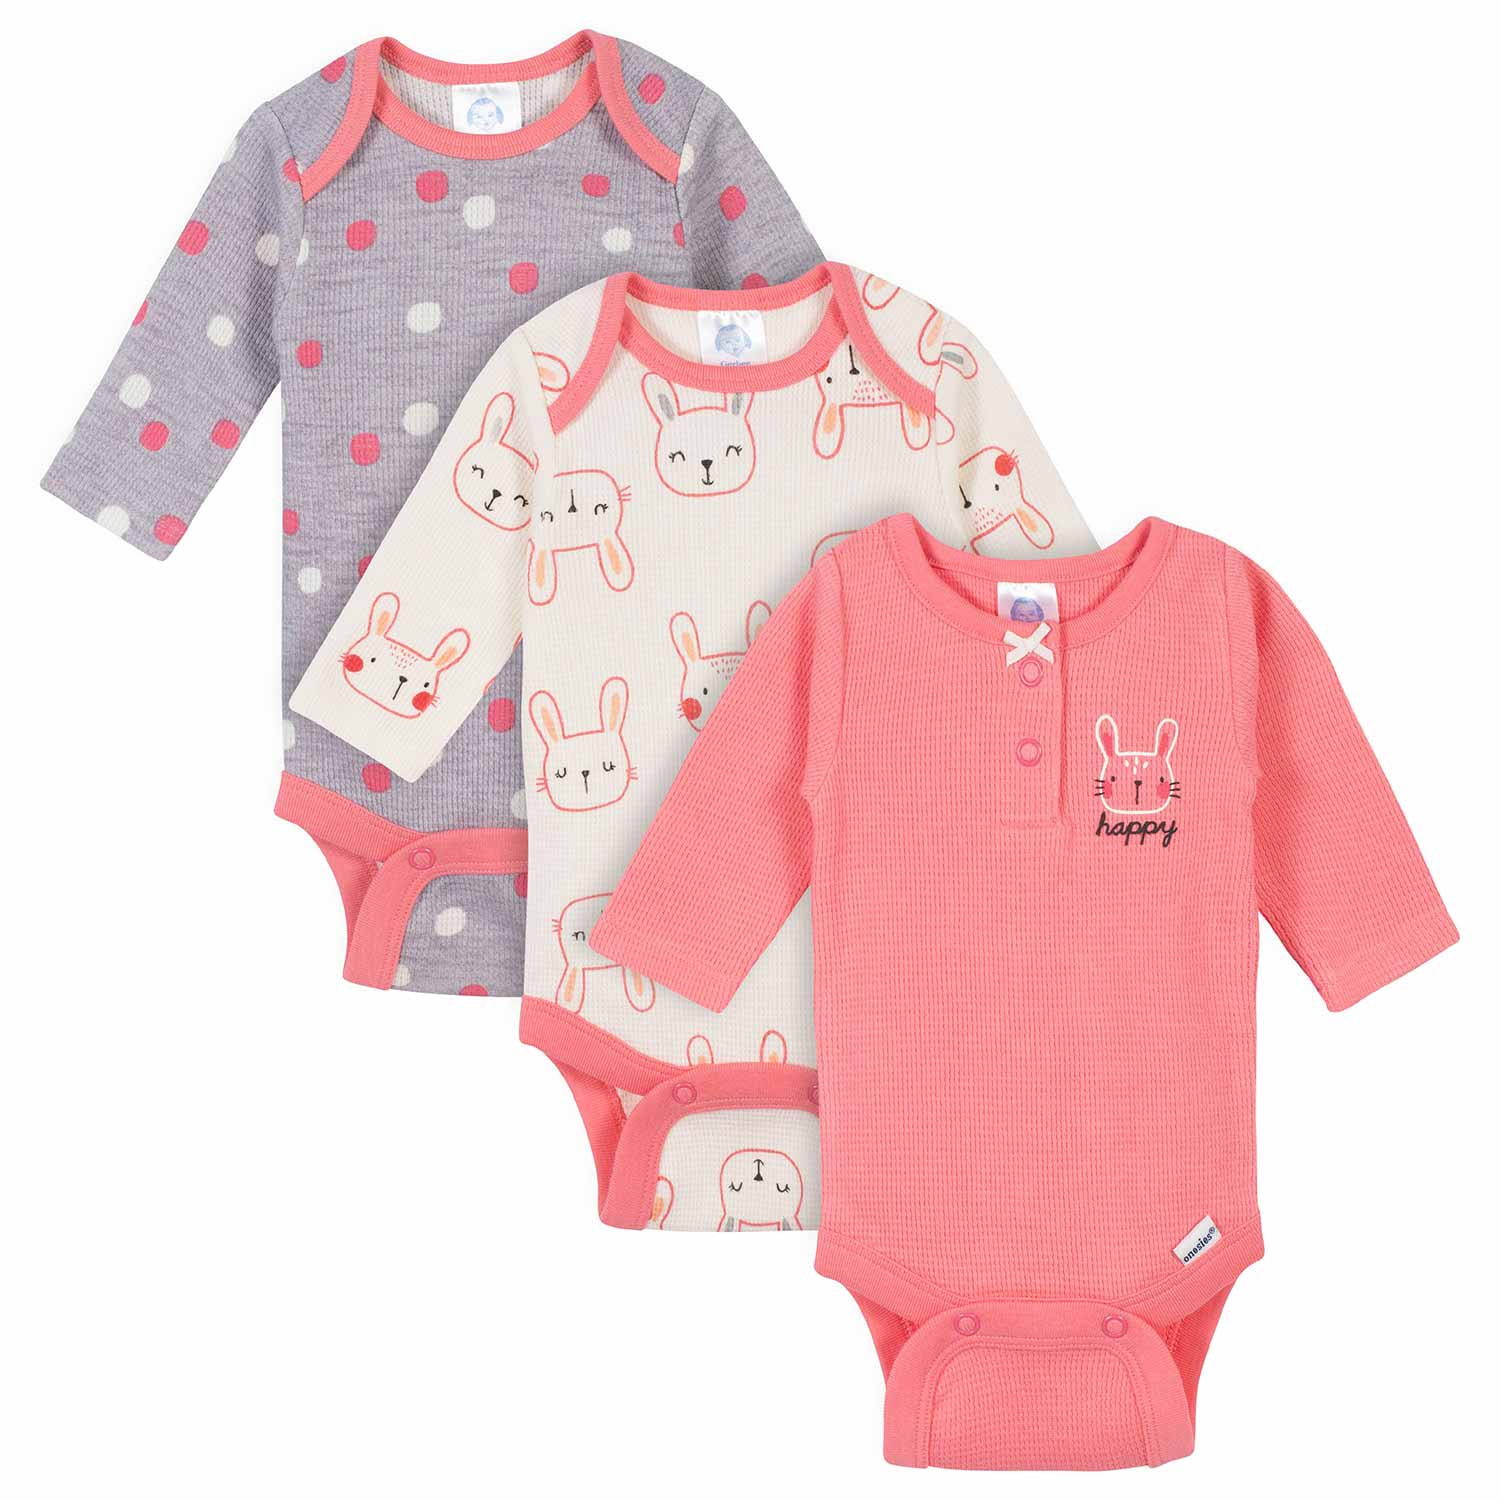 Gerber® 3-Pack Baby Girls Bunny Thermal Long Sleeve Onesies® Bodysuits